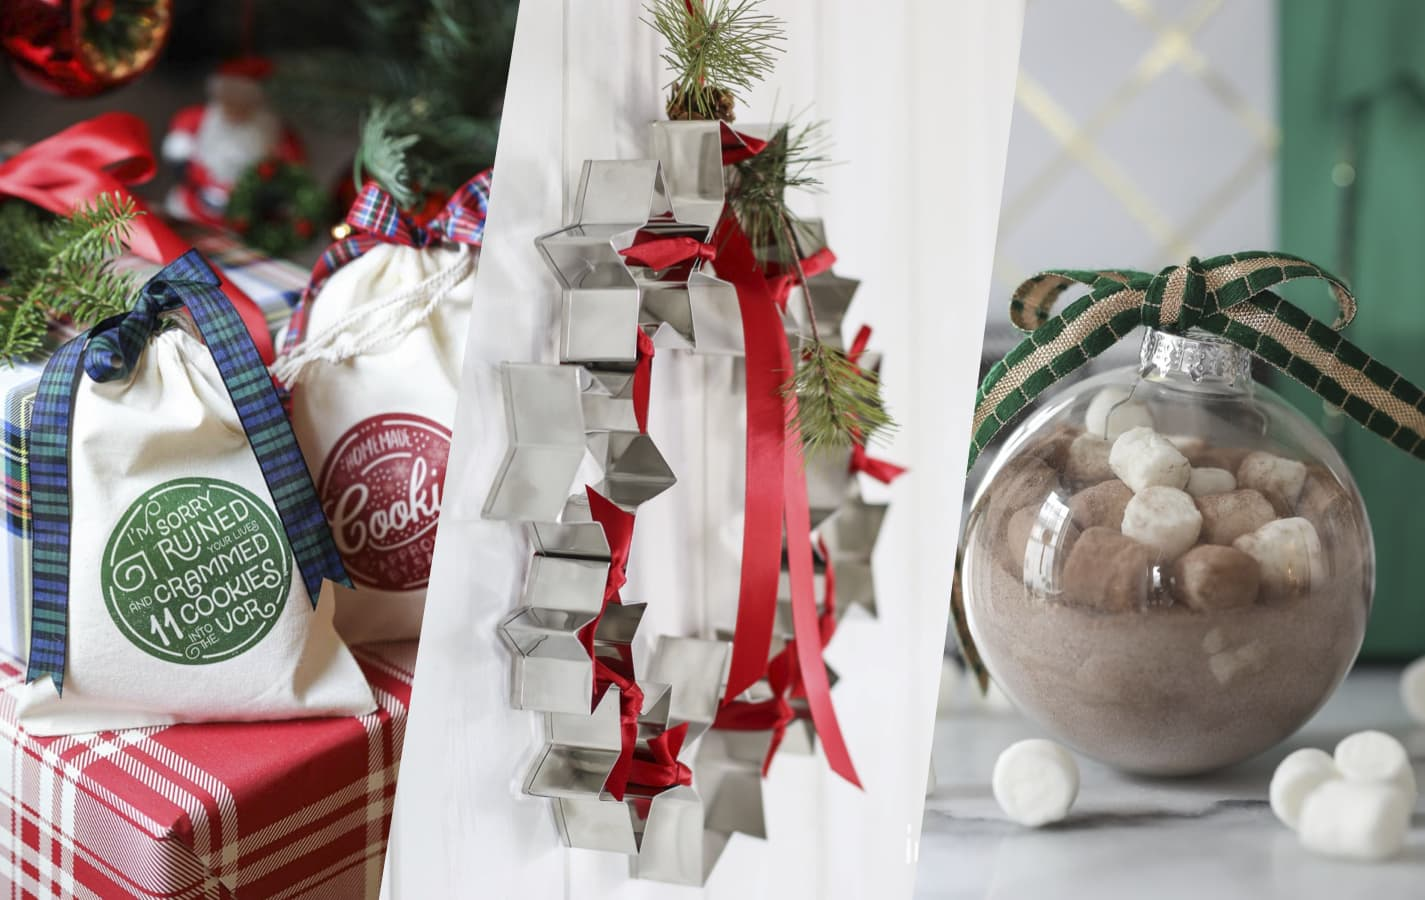 A Collection of my favorite Handmade Gift Ideas #gifts #homemade #handmade #holiday #christmas #gifting #gift